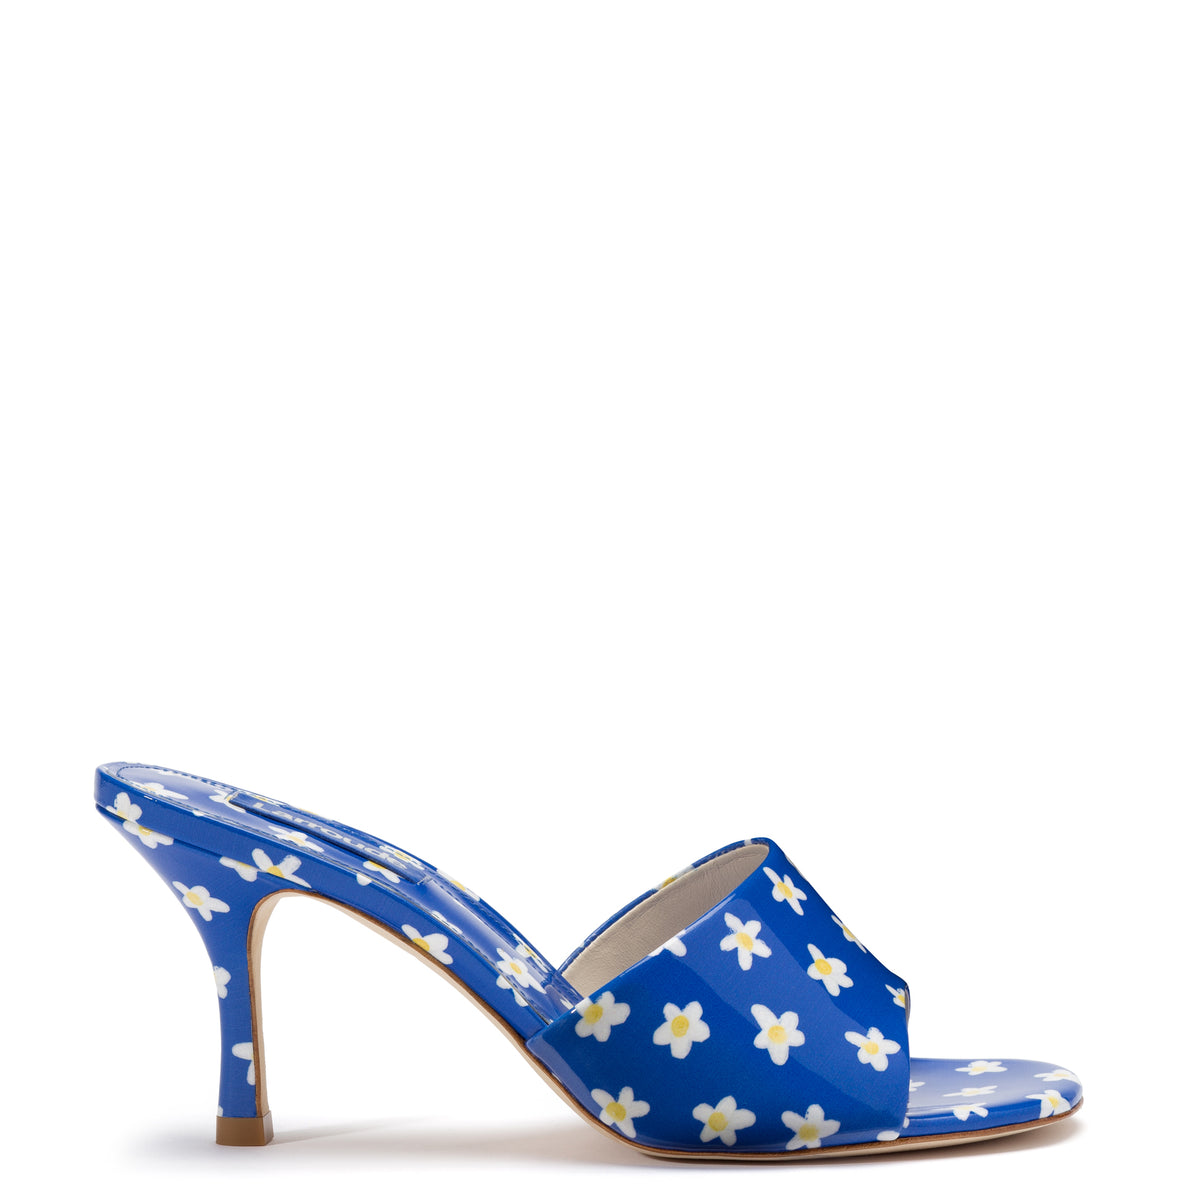 Colette Mule In Blue Floral Patent Leather